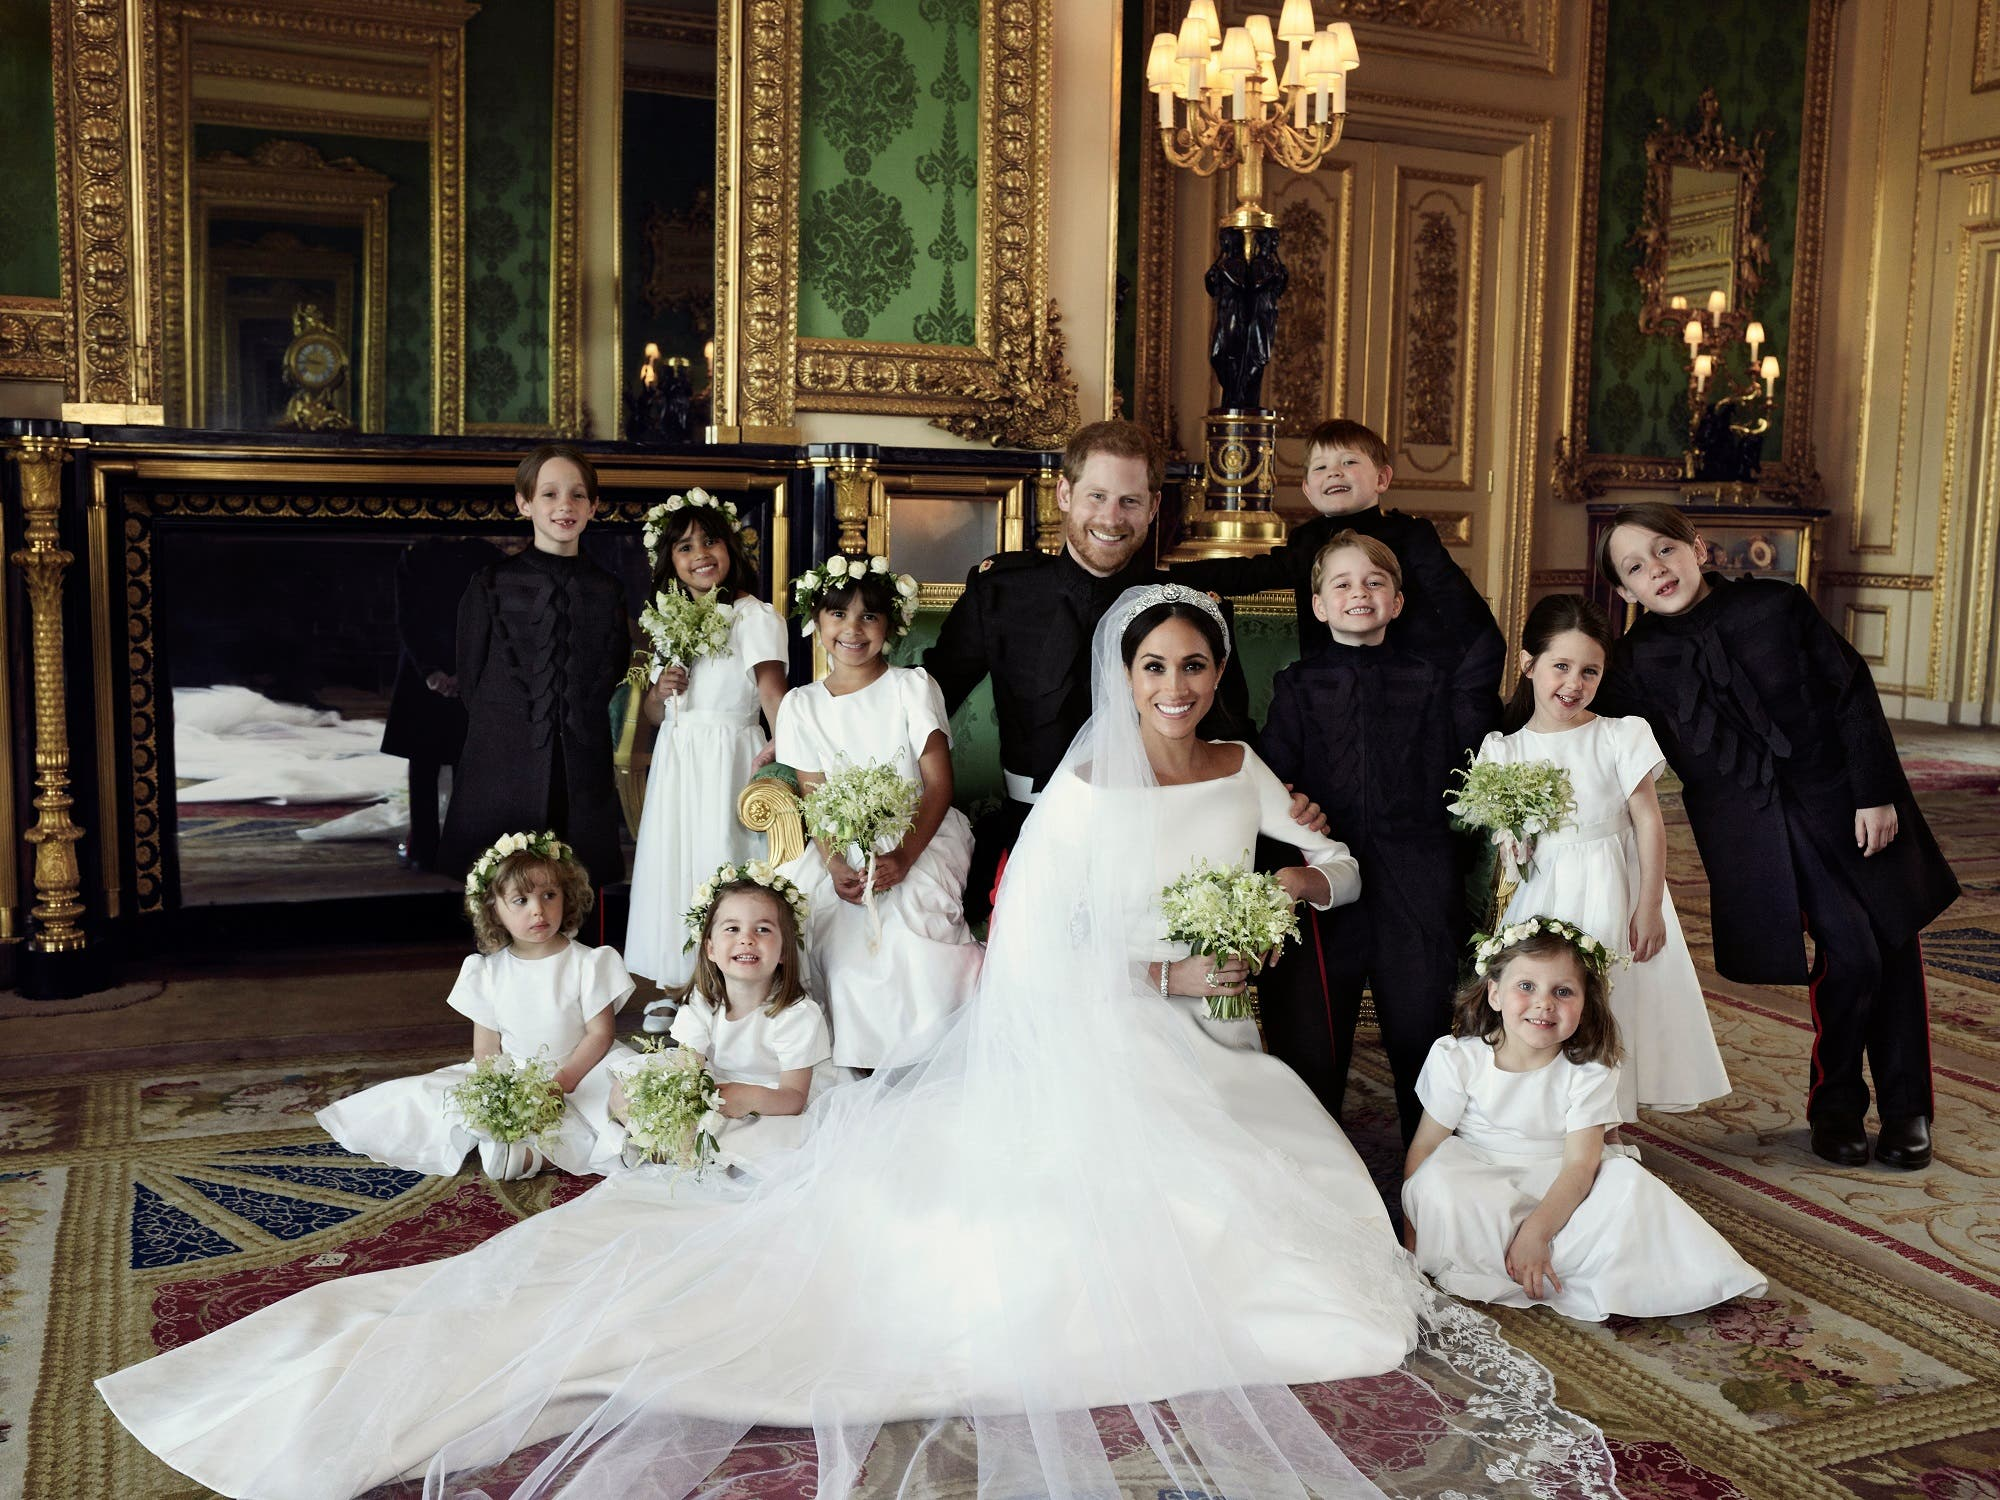 The photographs were taken by photographer Alexi Lubomirski at Windsor Castle following the carriage procession.